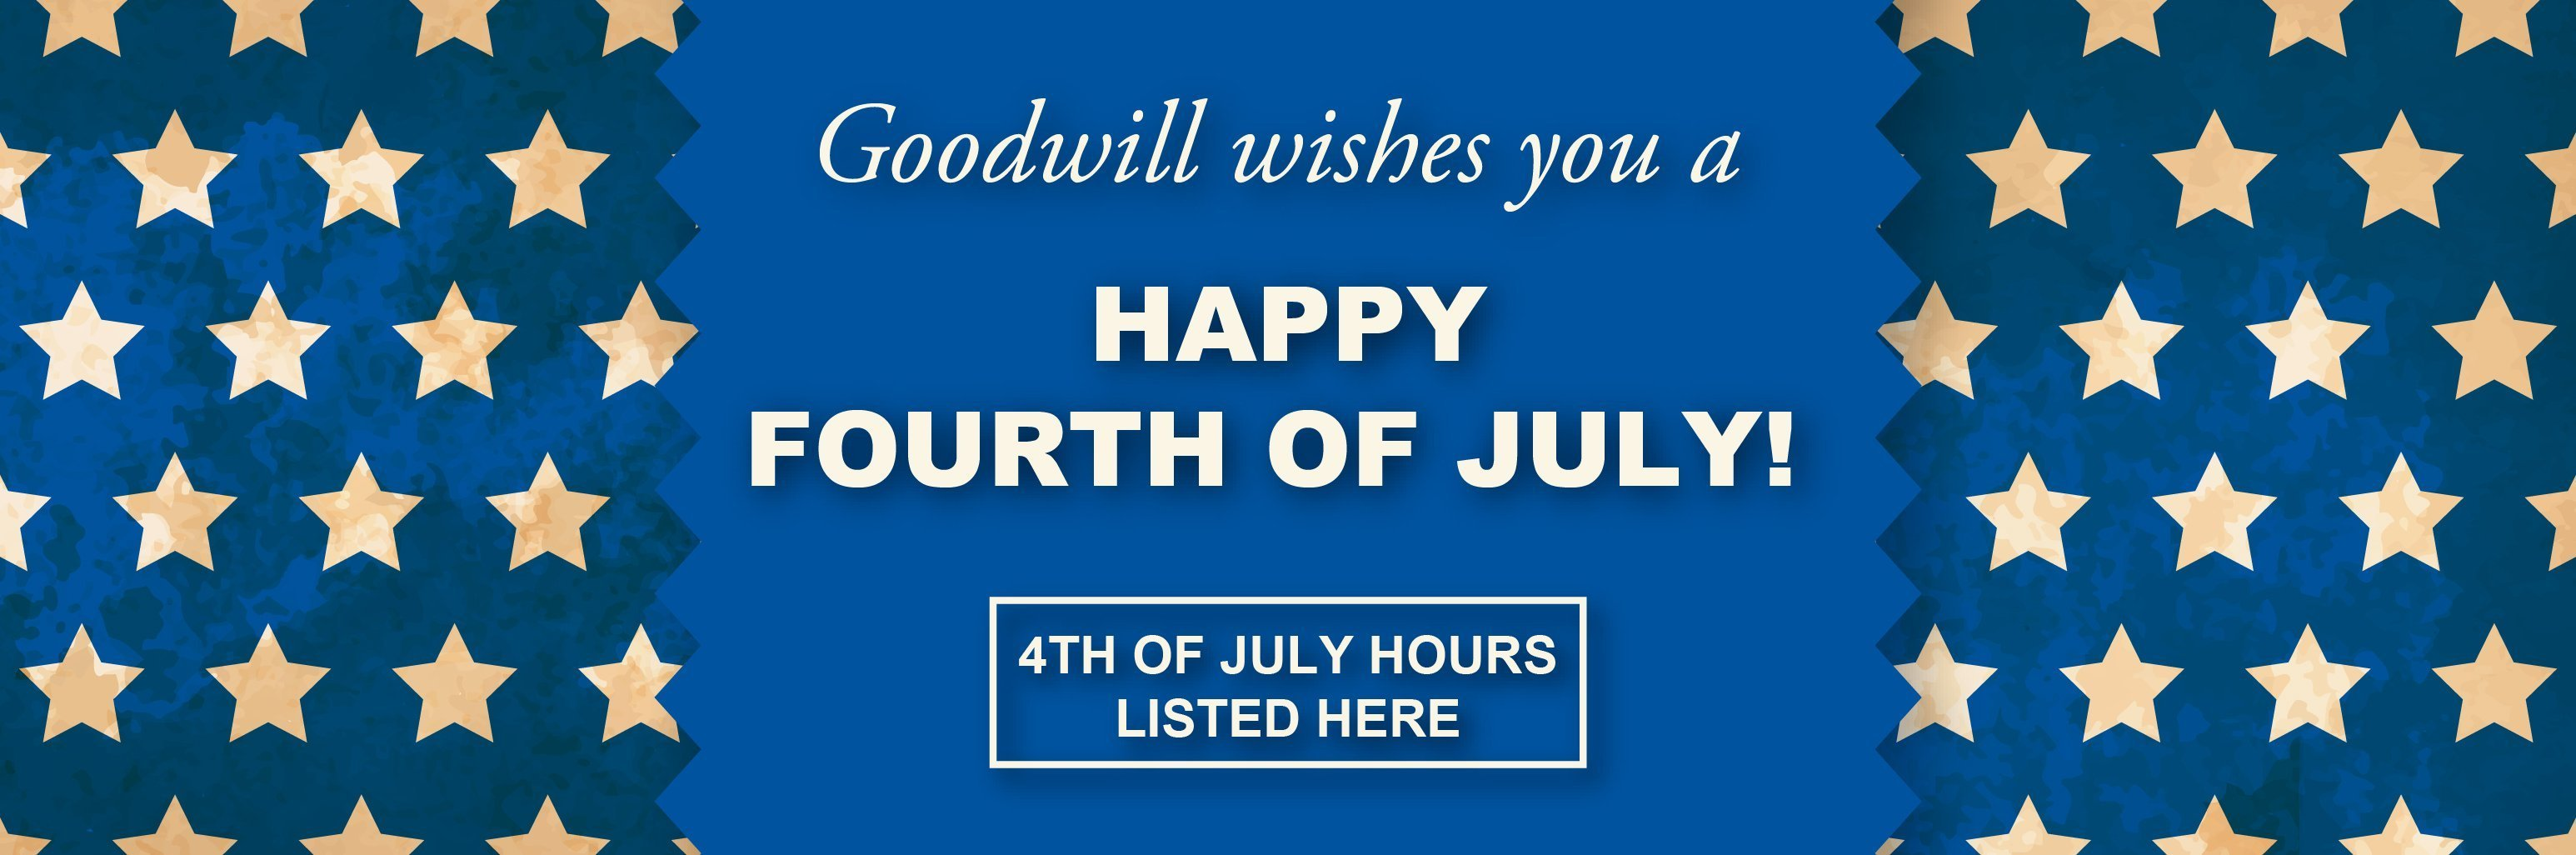 4TH OF JULY HOURS 2017-01